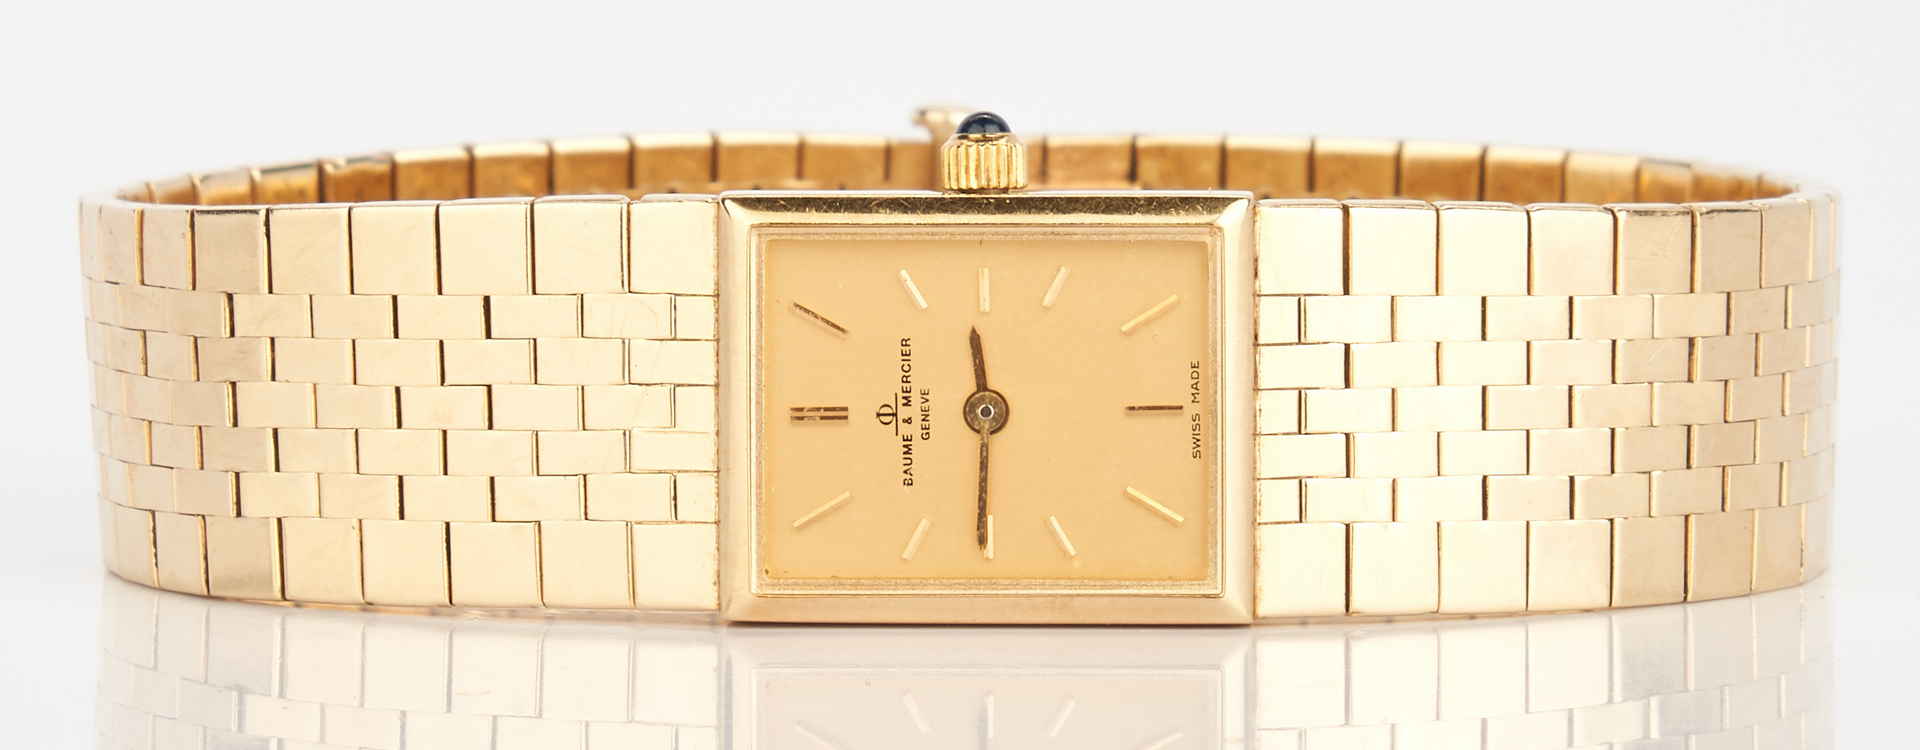 Lot 235: Baume & Mercier 14K Ladies Watch